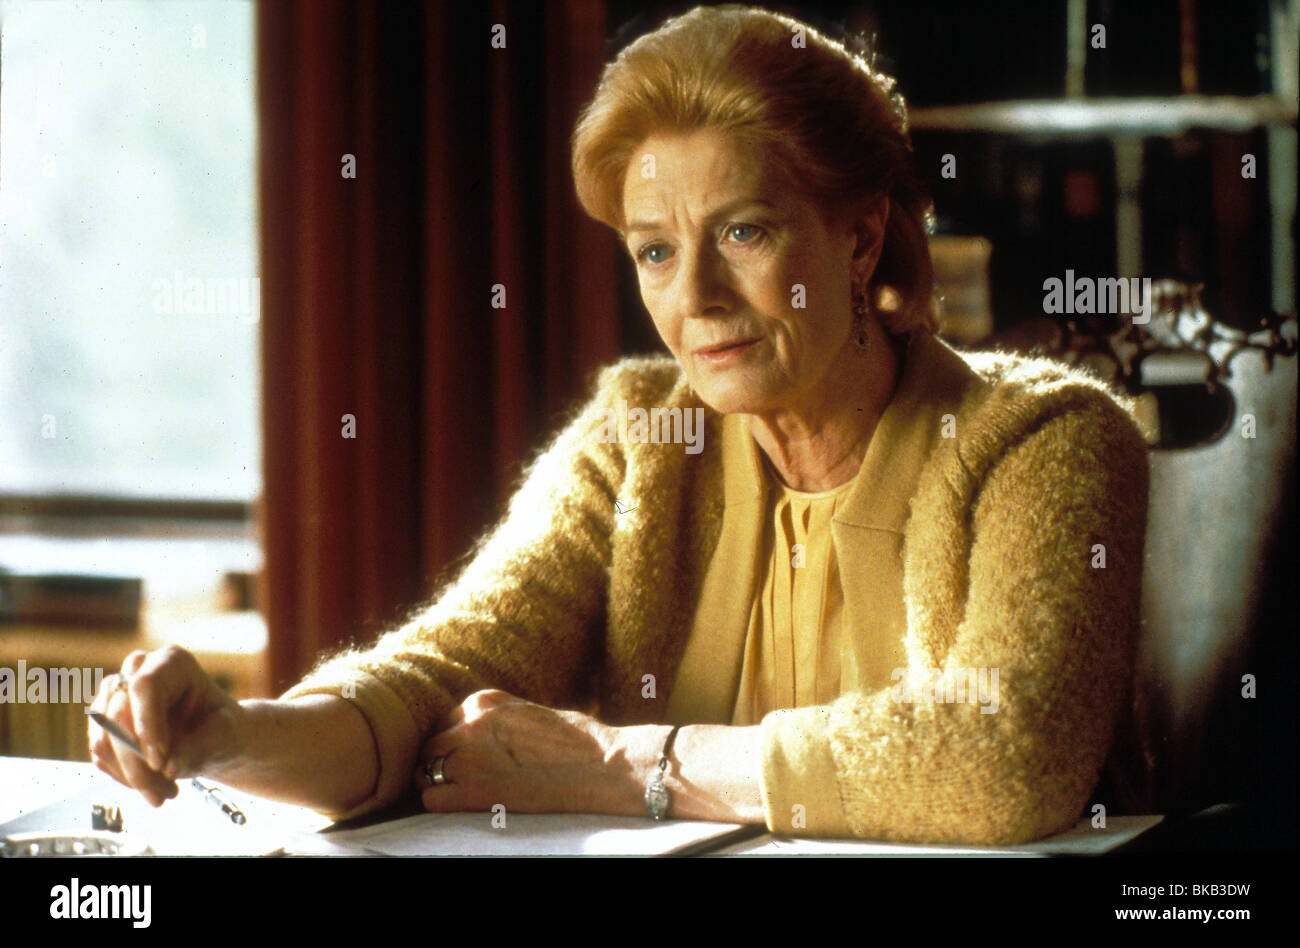 GIRL, INTERRUPTED (1999) VANESSA REDGRAVE GINT 057 - Stock Image